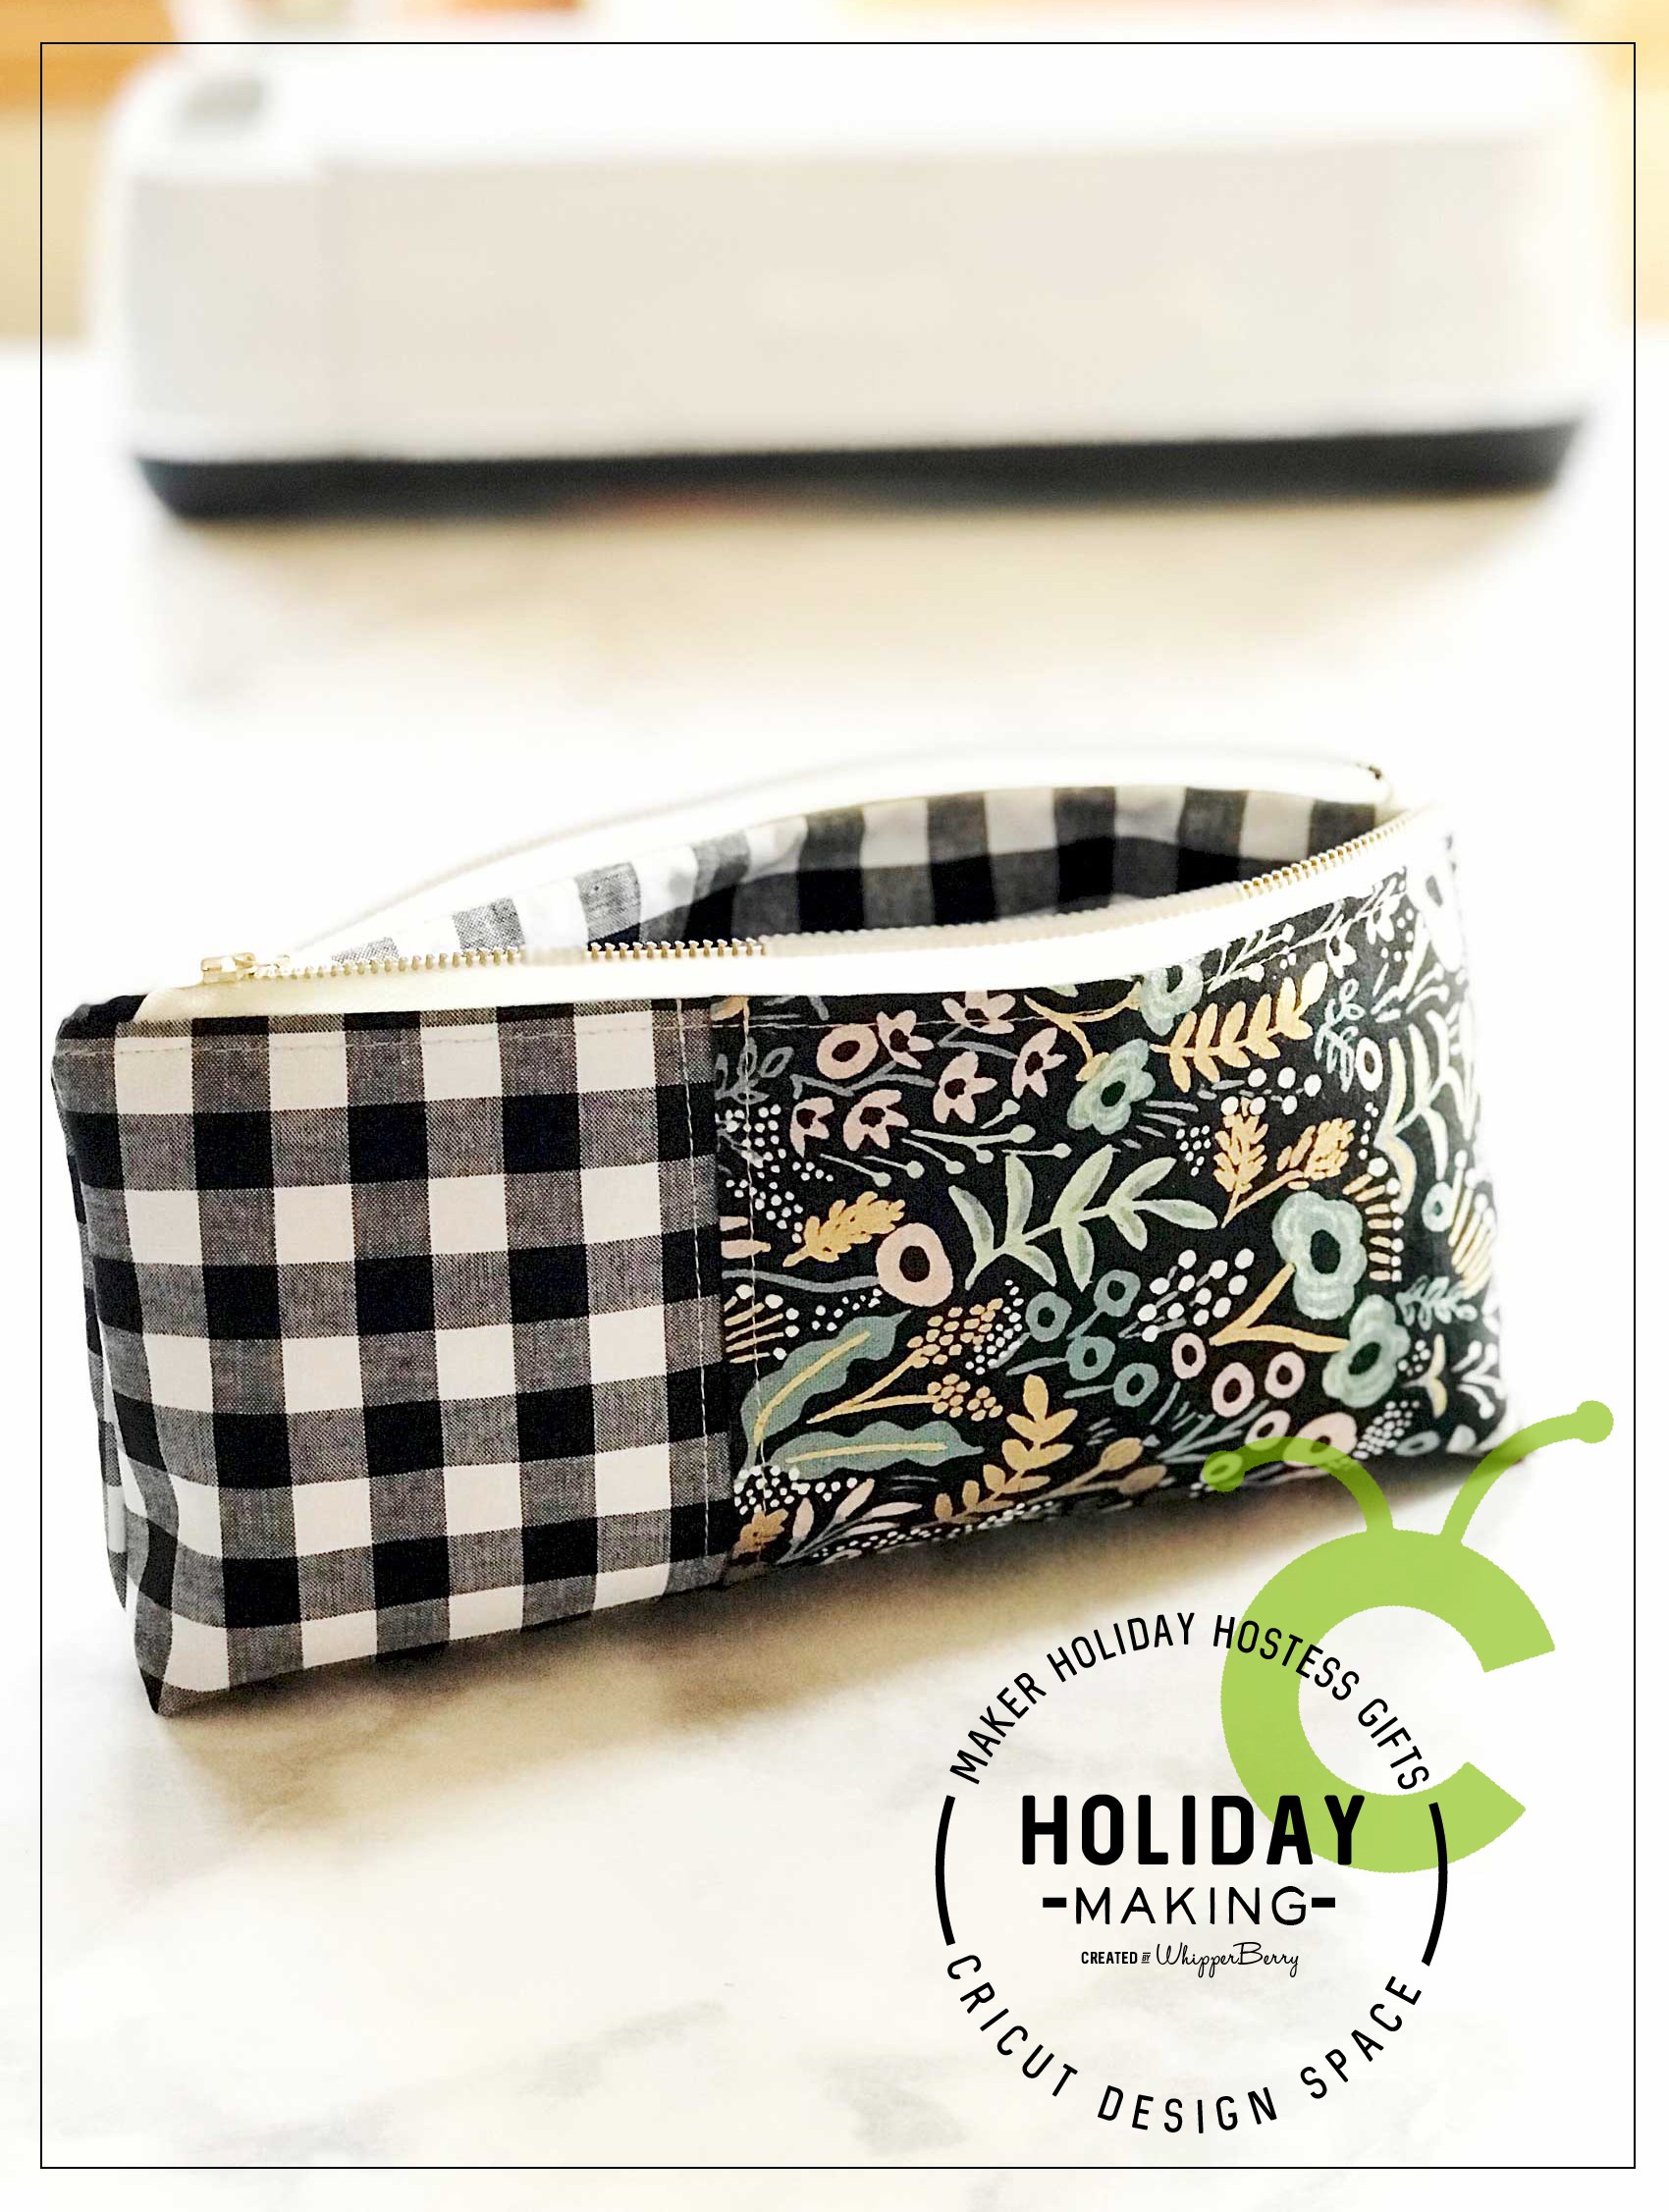 Zipper Pouch a Perfect Holiday Hostess Gift Cut with the Cricut Maker • Whipperberry